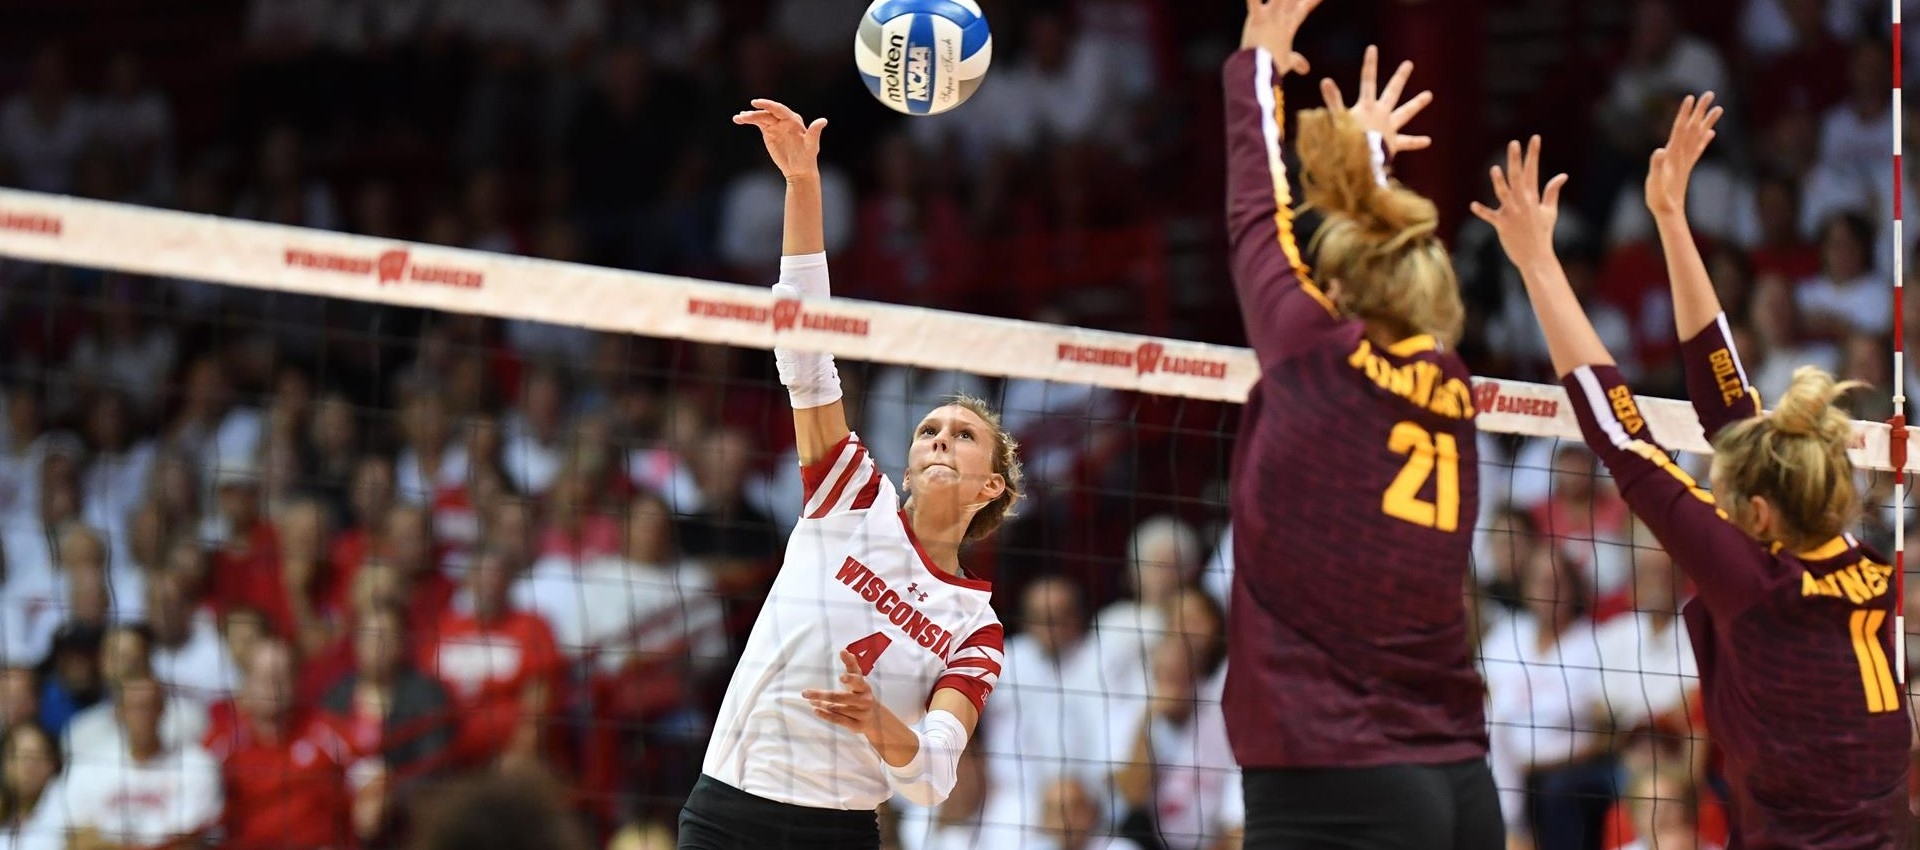 It took all 5, but Gophers beat Badgers in Top 10 volleyball matchup